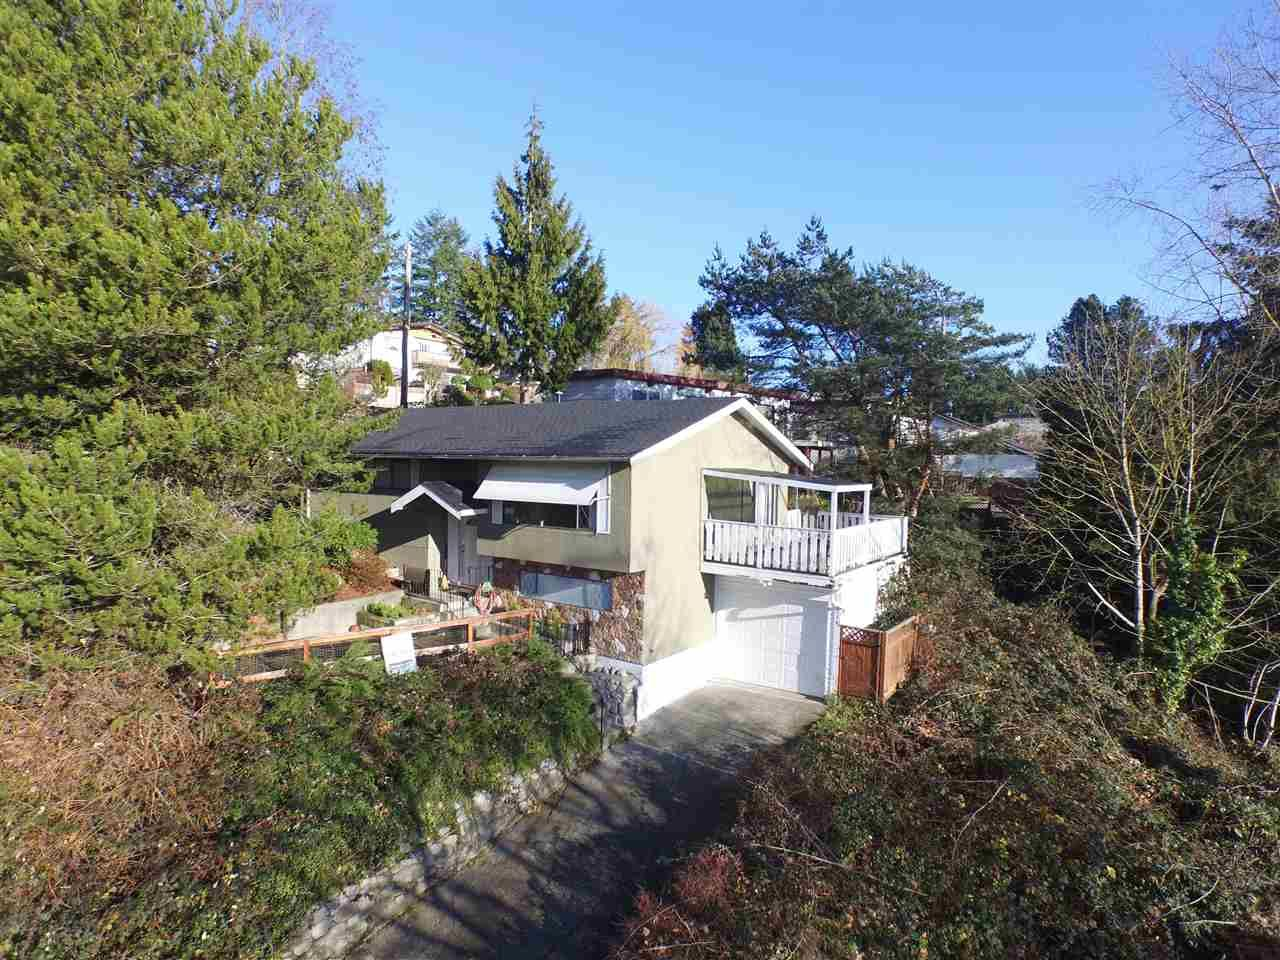 Photo 20: Photos: 7254 WREN STREET in Mission: Mission BC House for sale : MLS®# R2021052